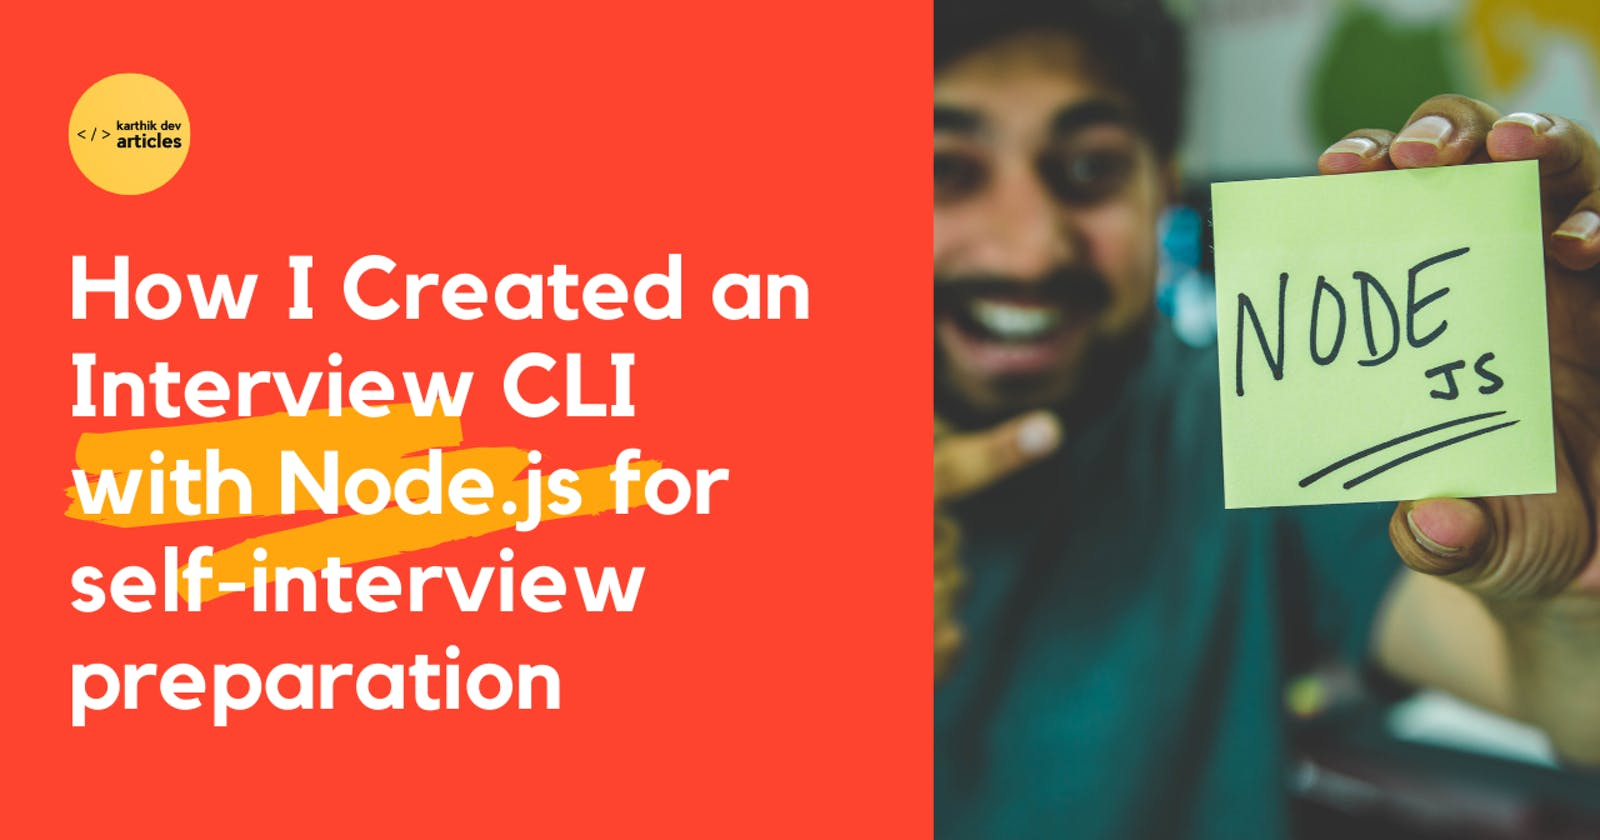 How I Created an Interview CLI with Node.js for self-interview preparation